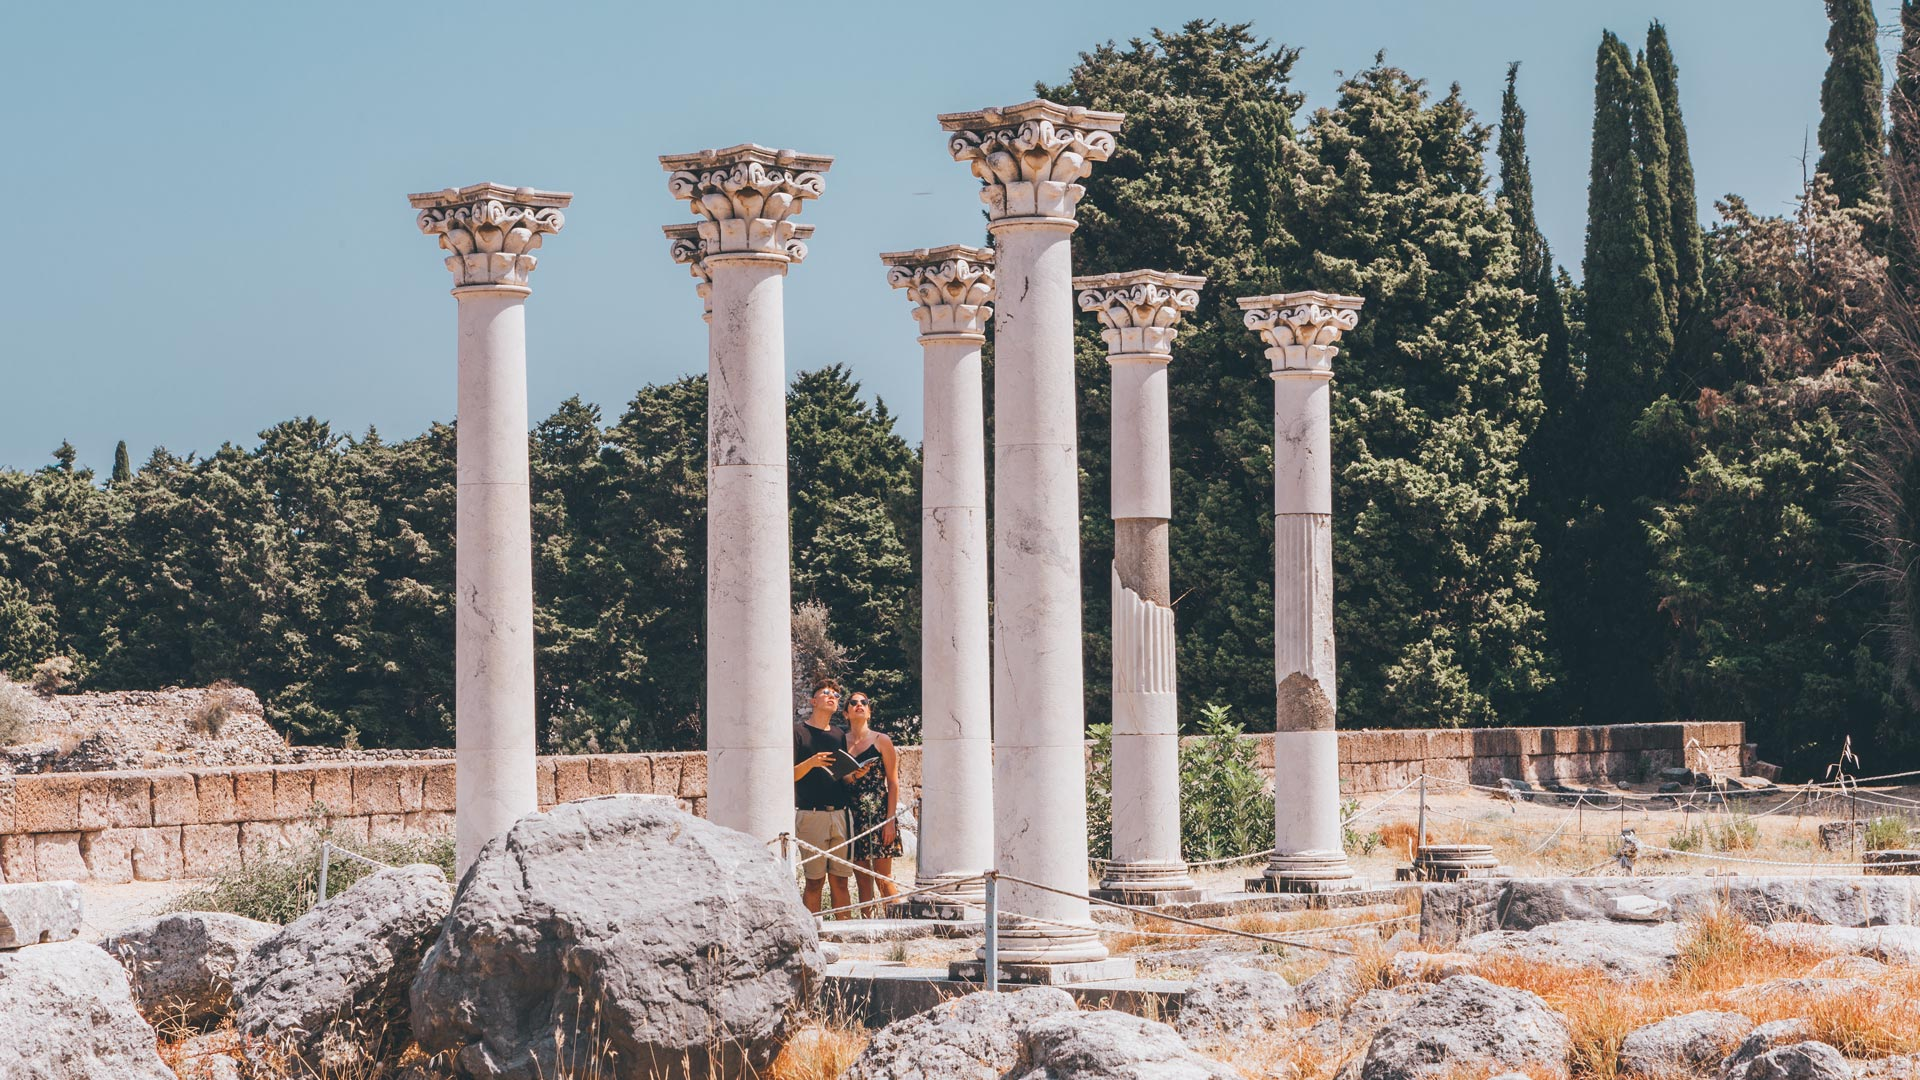 The seven columns of the Temple of Apollo (father of Asclepius)